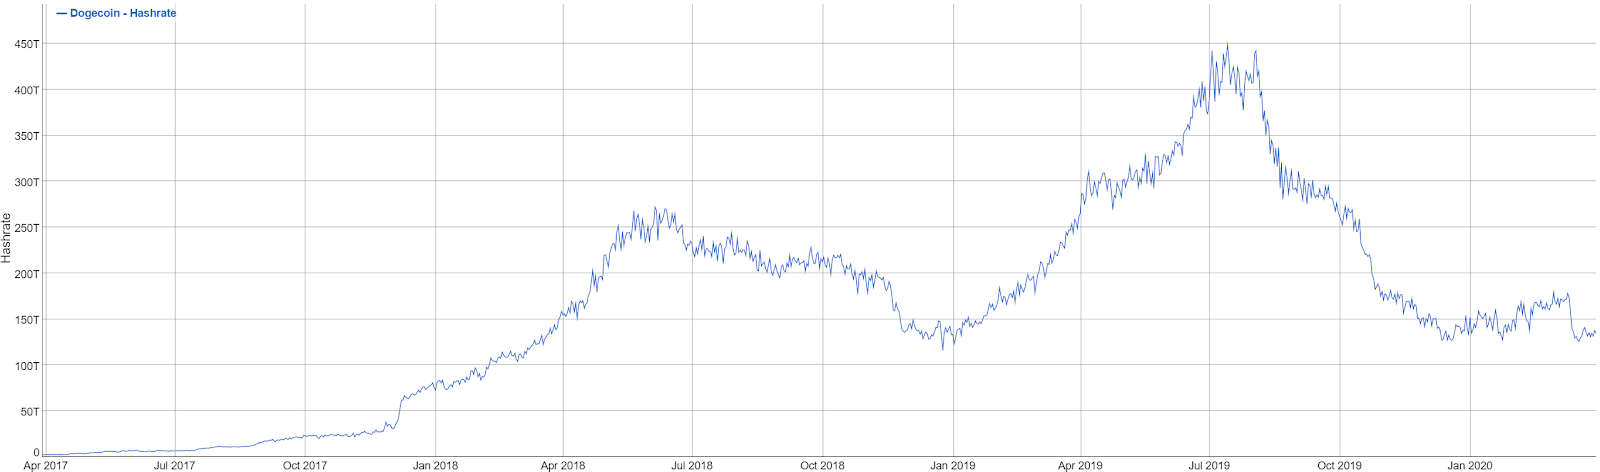 Dogecoin Stock Chart - Dogecoin Doge Price Prediction For ...